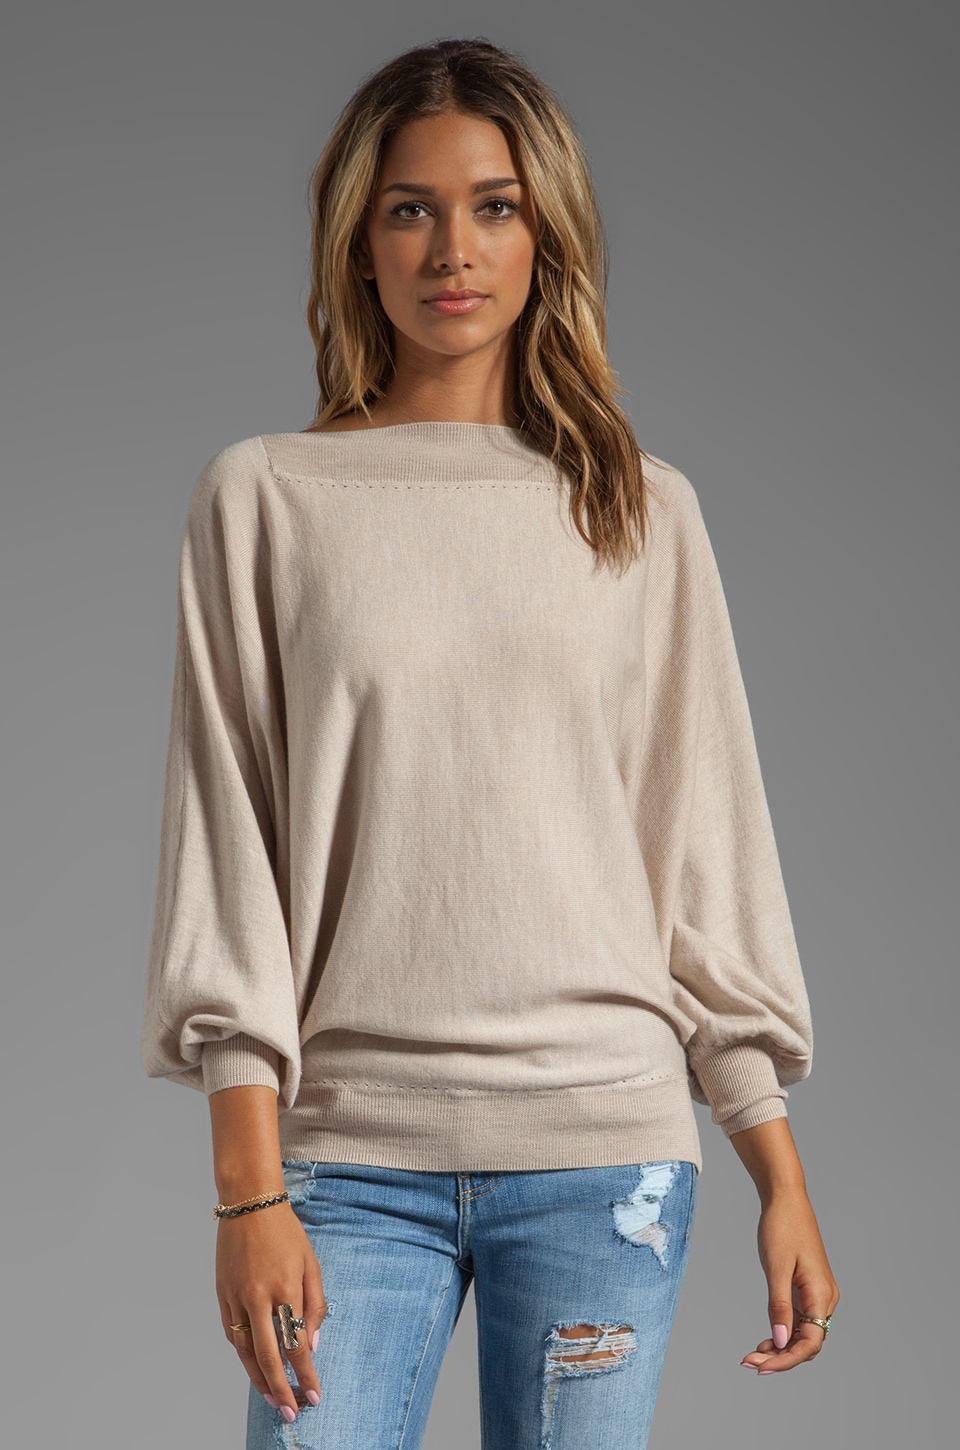 Trina Turk Halima Sweater in Beige